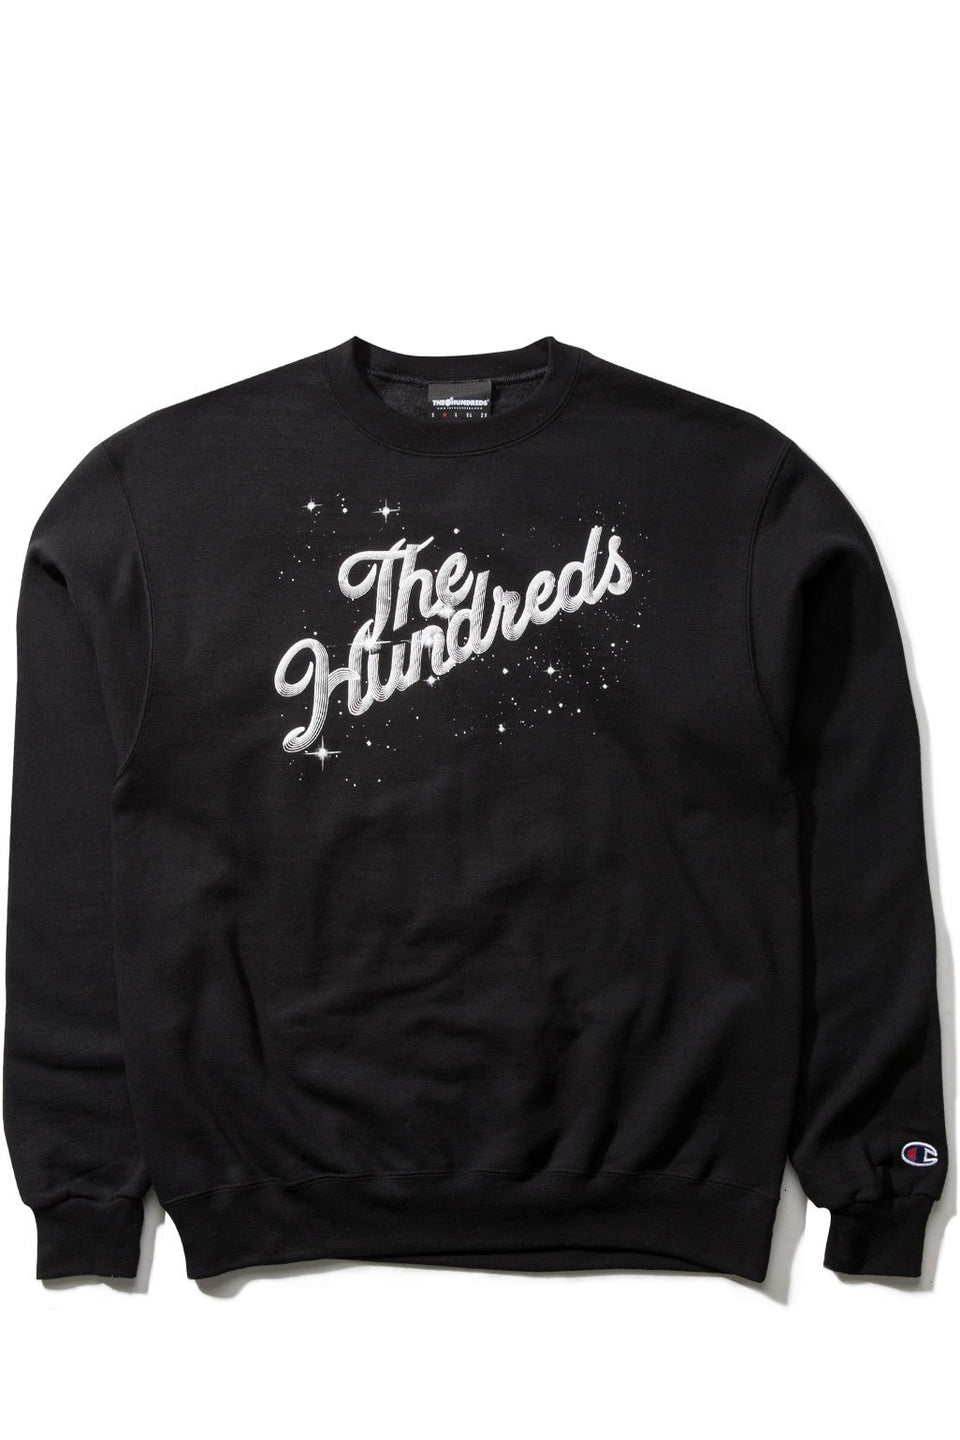 Search Slant Crewneck-TOPS-The Hundreds UK